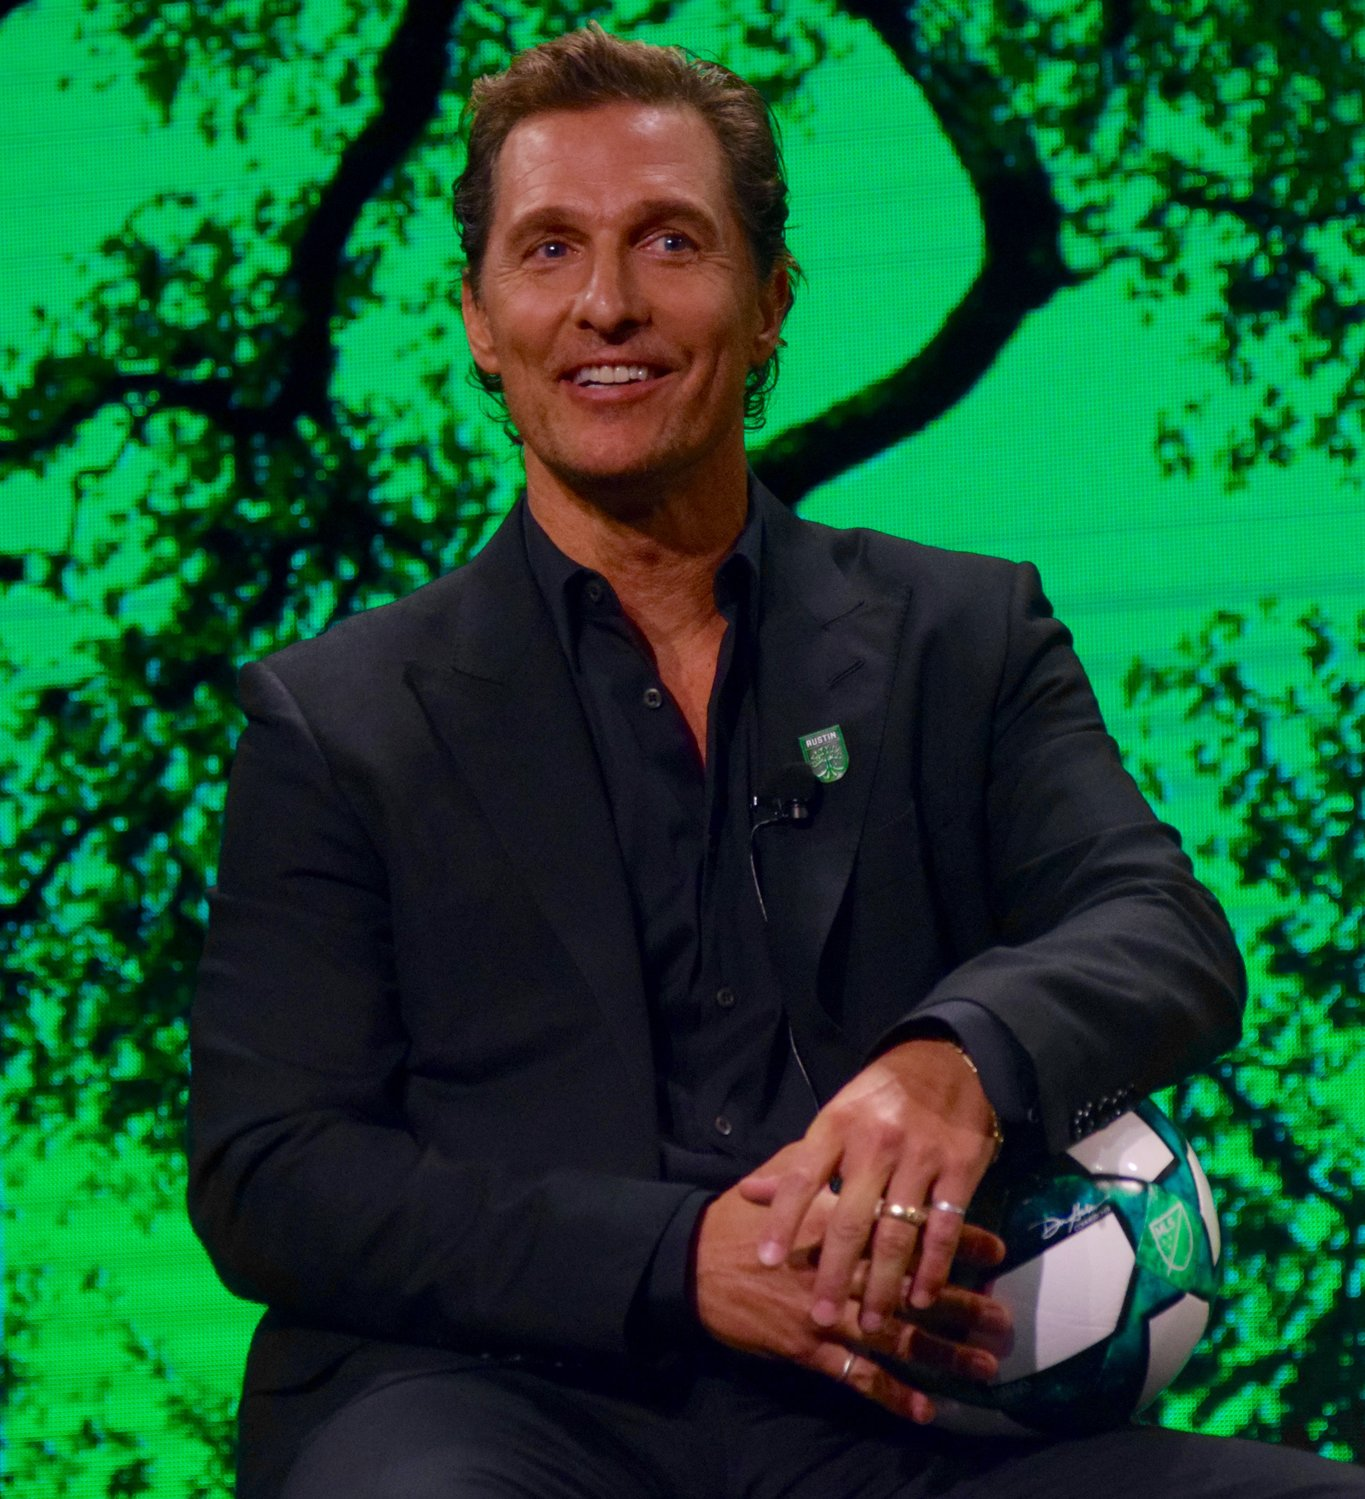 Academy Award-winning actor Matthew McConaughey joined the ownership group of Austin FC, the club announced at a special event on Friday.